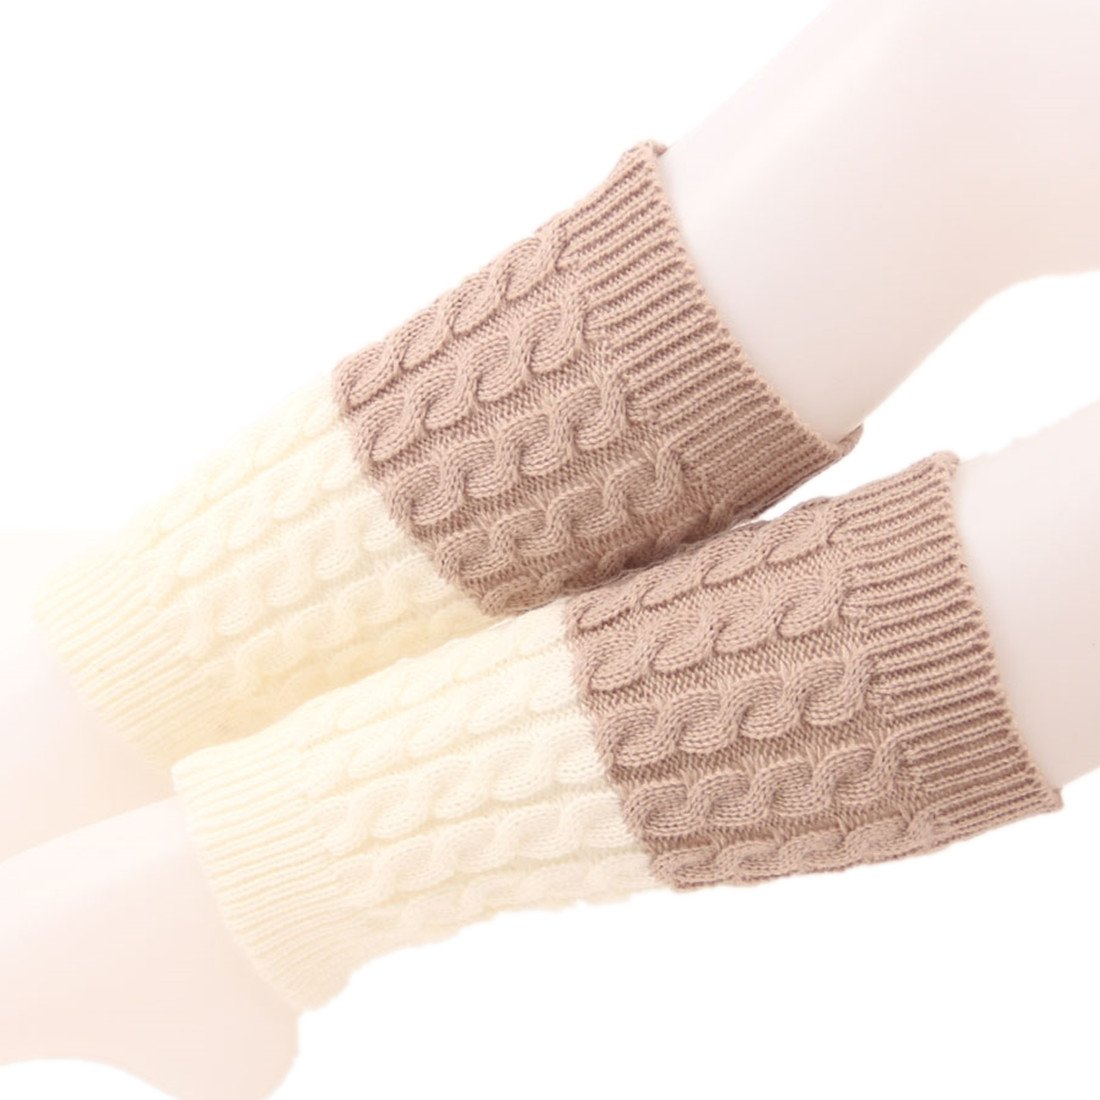 Spring fever Women's Double Sided Knit Boot Socks Topper Cuffs Leg Warmers MNS0124A10FS